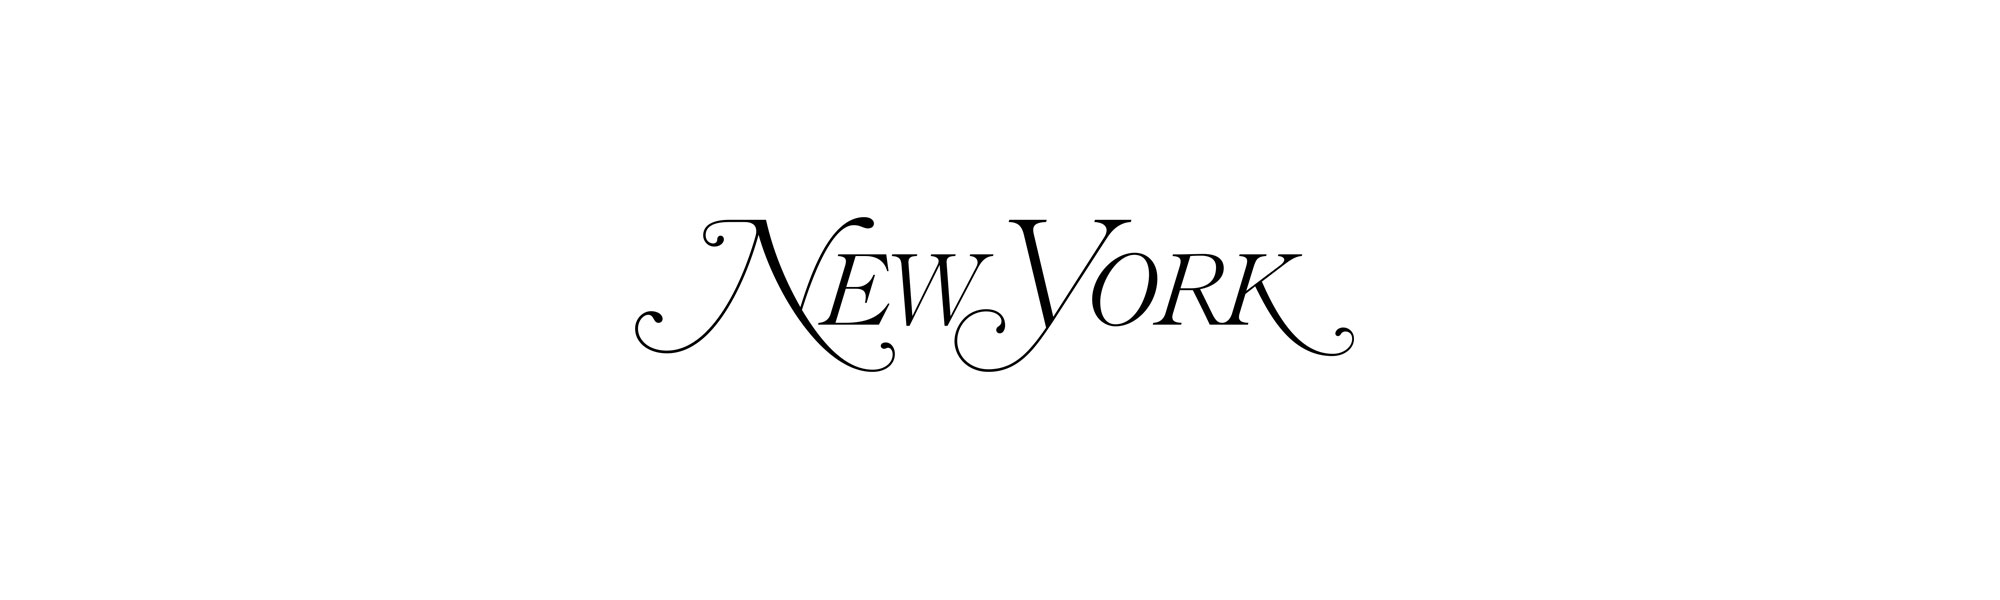 New York The Cut: What Aging Gracefully Looks Like After 100 …more